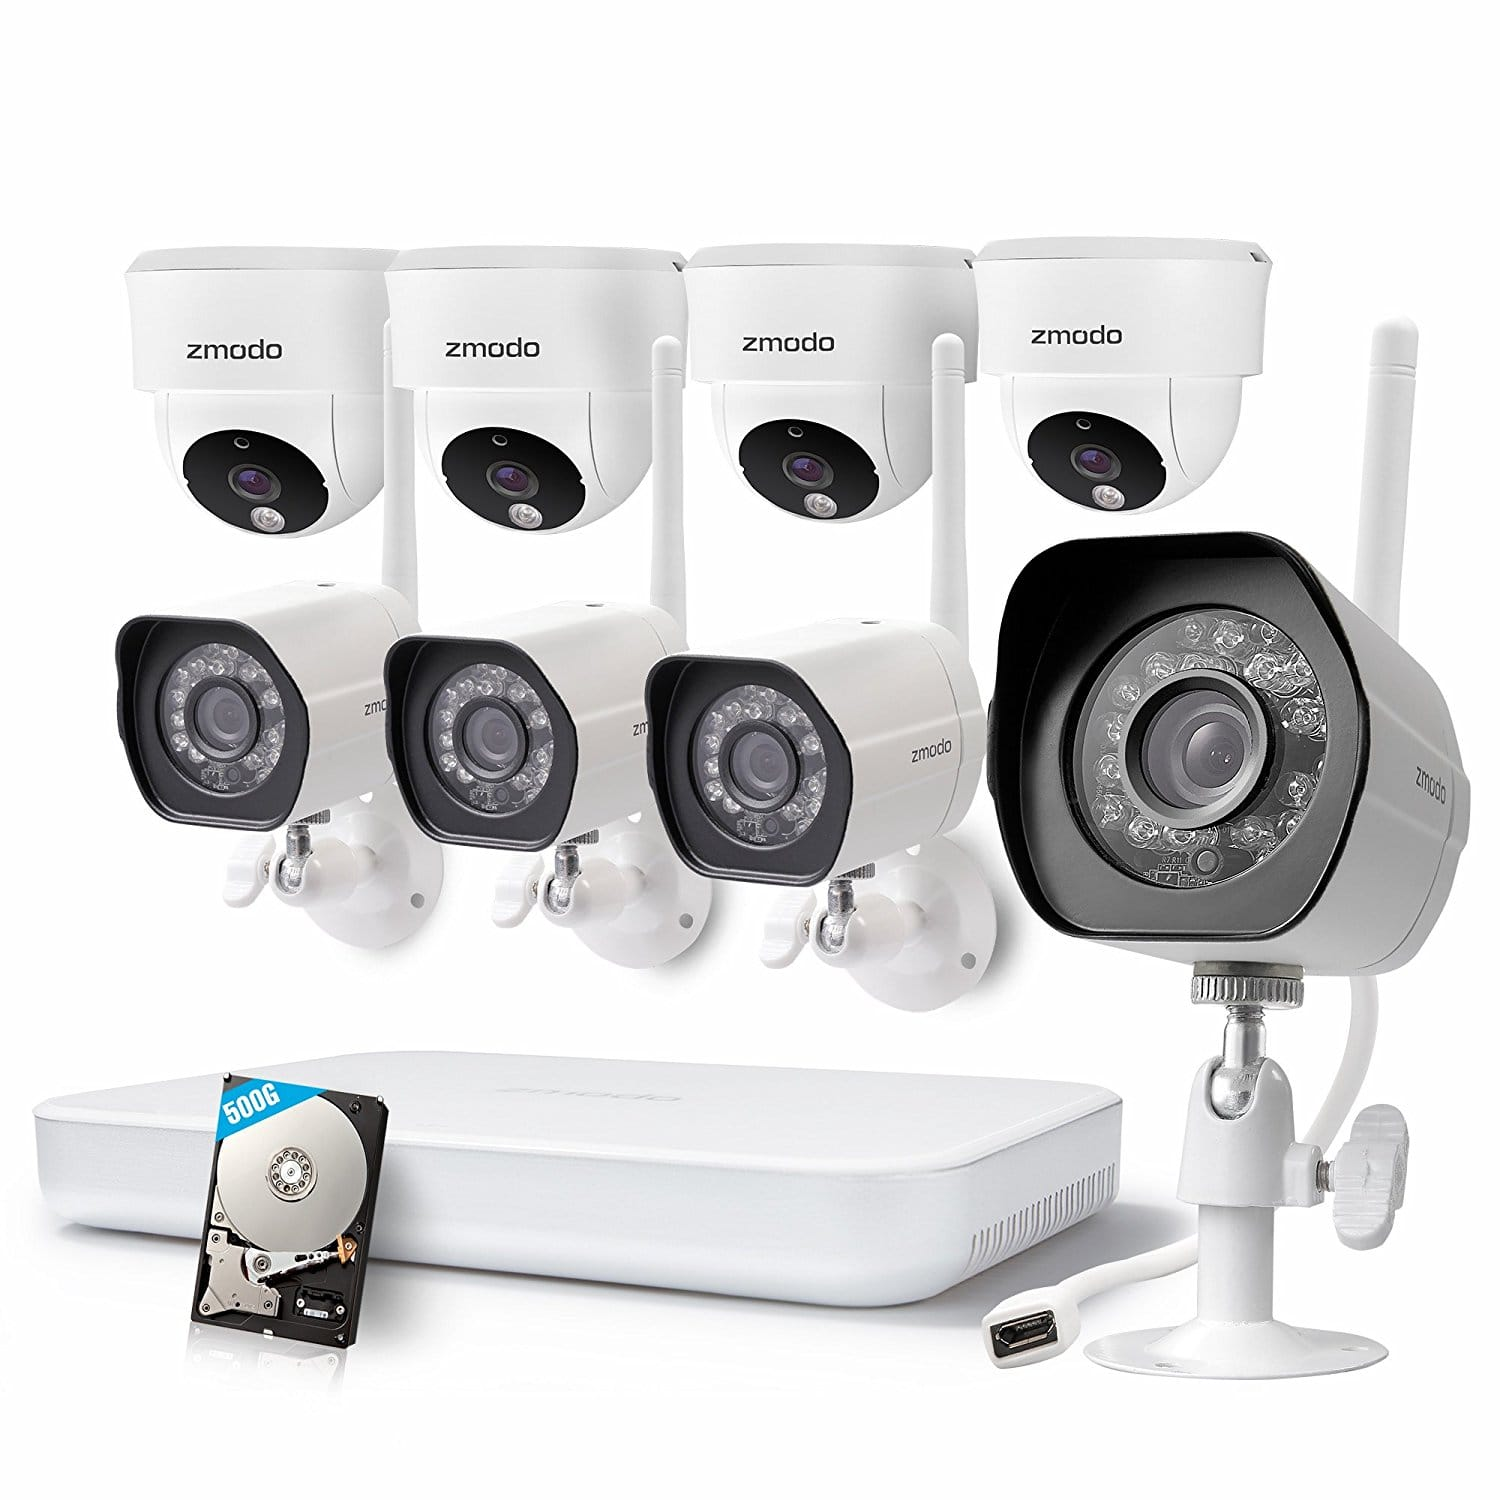 Save $100 Zmodo 1080p HD NVR WiFi System + 8 HD Outdoor/Indoor Wireless Security Camera + 500GB Hard Drive $139.99